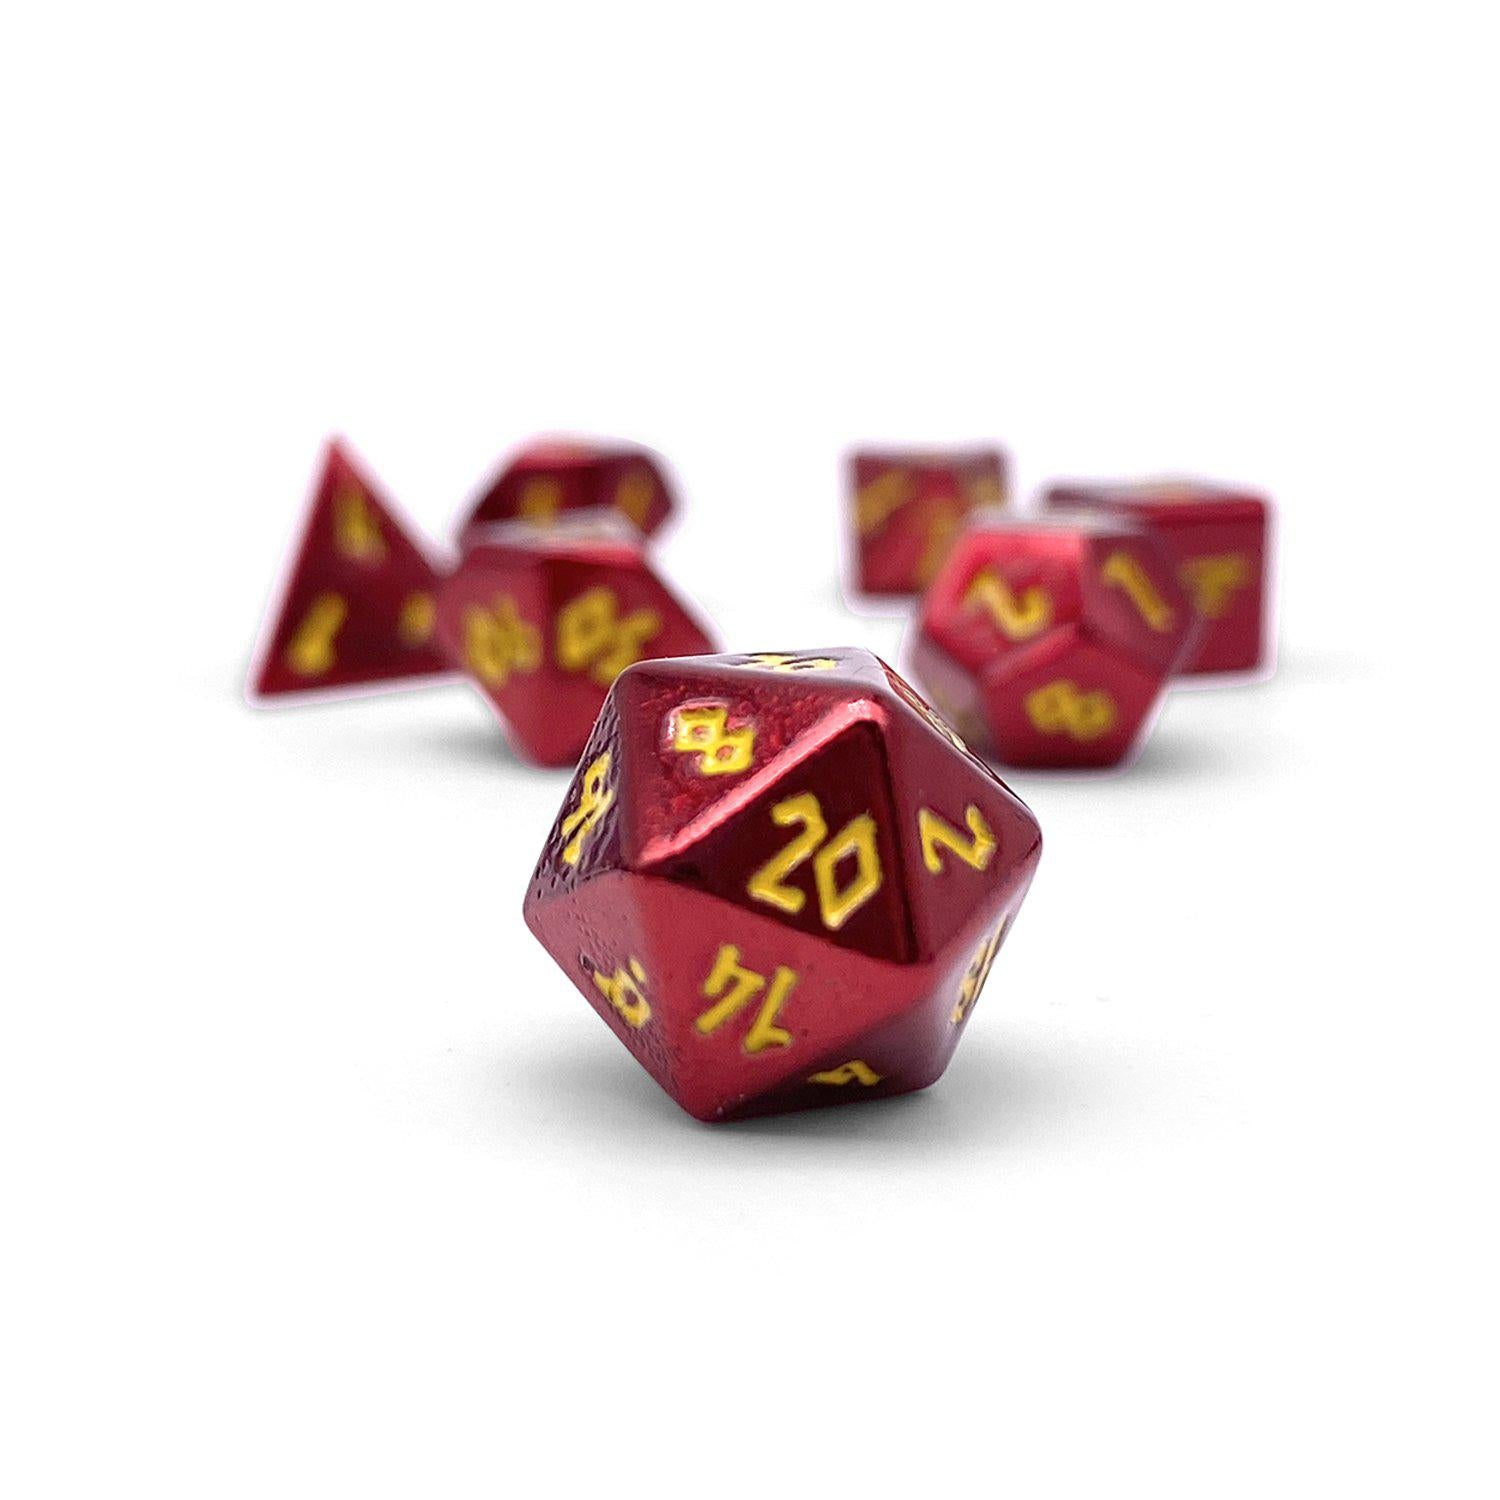 Fireball Pebble ™ Dice - 10mm Alloy Mini Polyhedral Dice Set